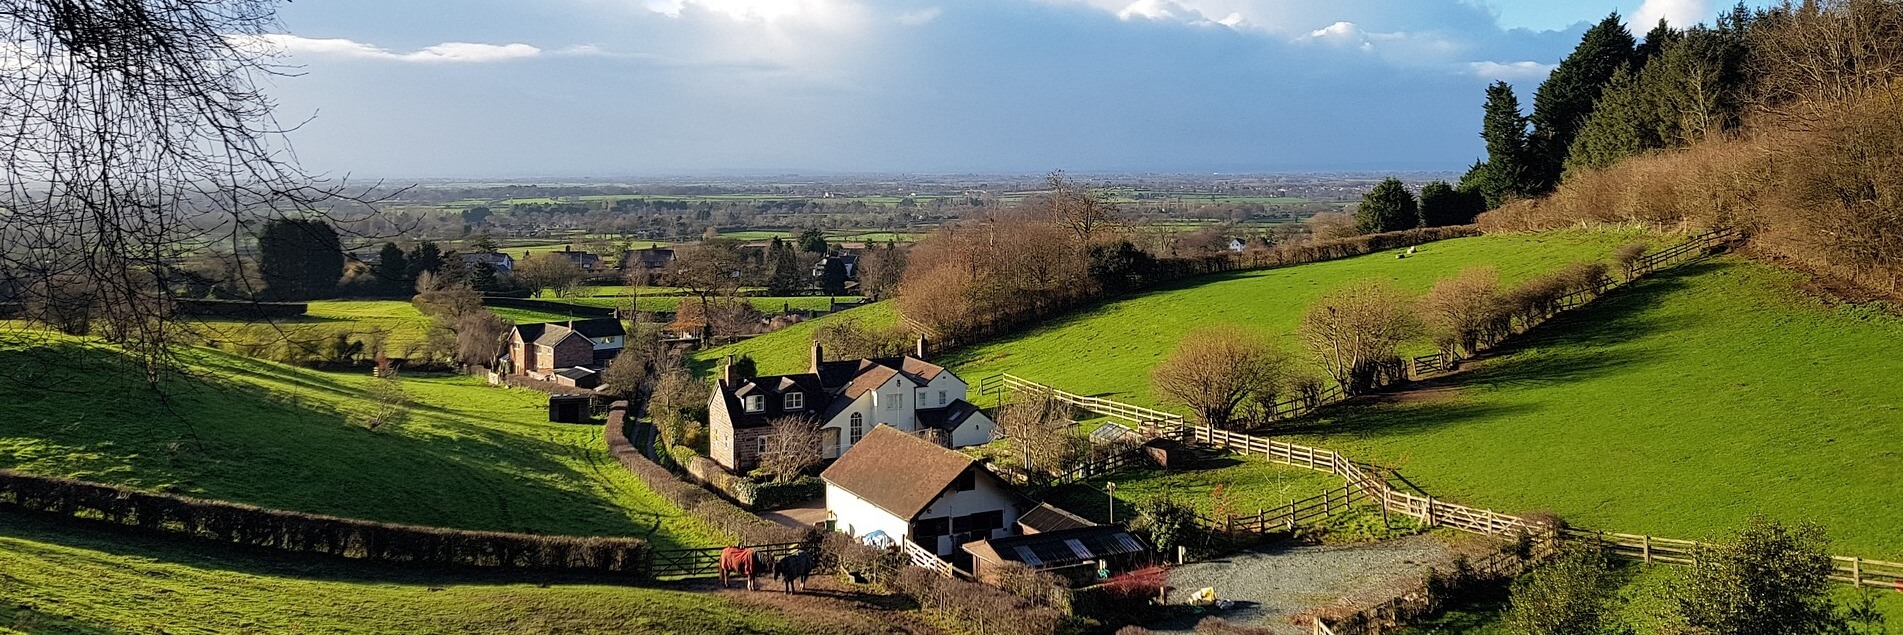 Luxury boutique Barns and Cottages in Cheshire